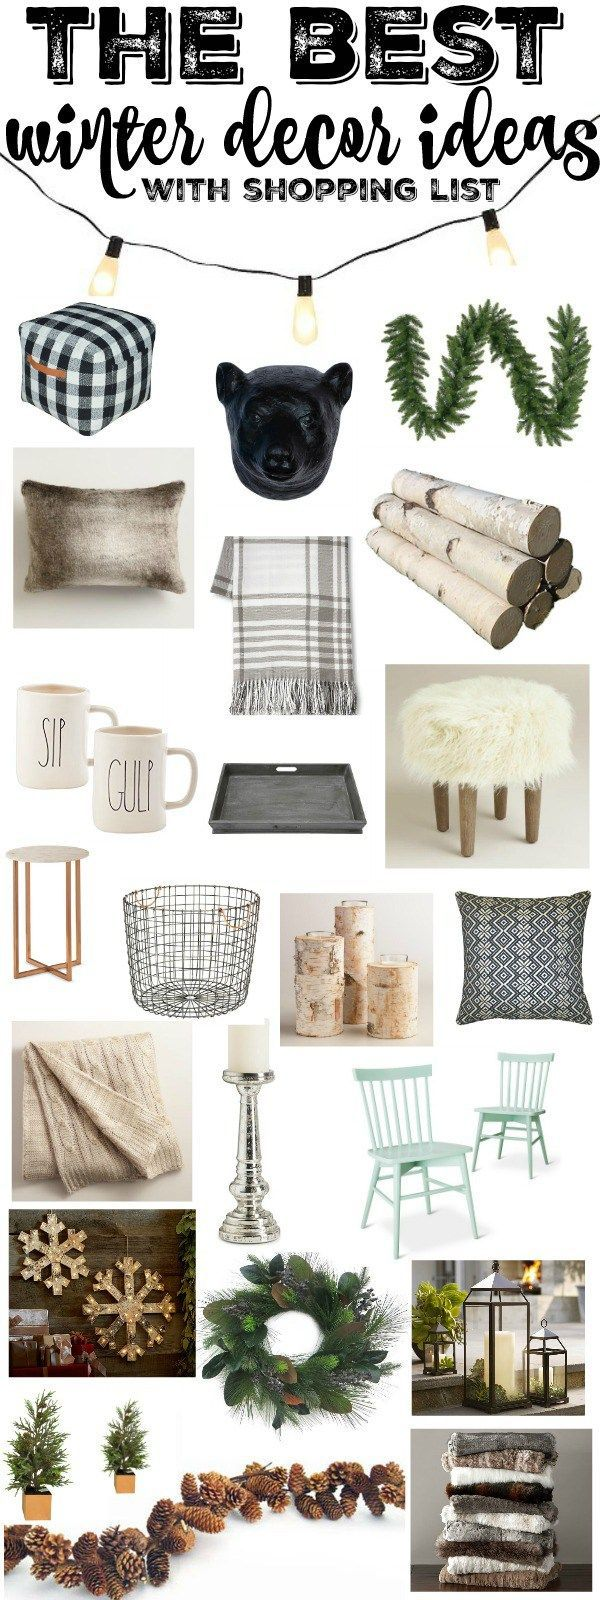 The best winter decor ideas with a complete shopping list so you can shop all of the winter decor items!